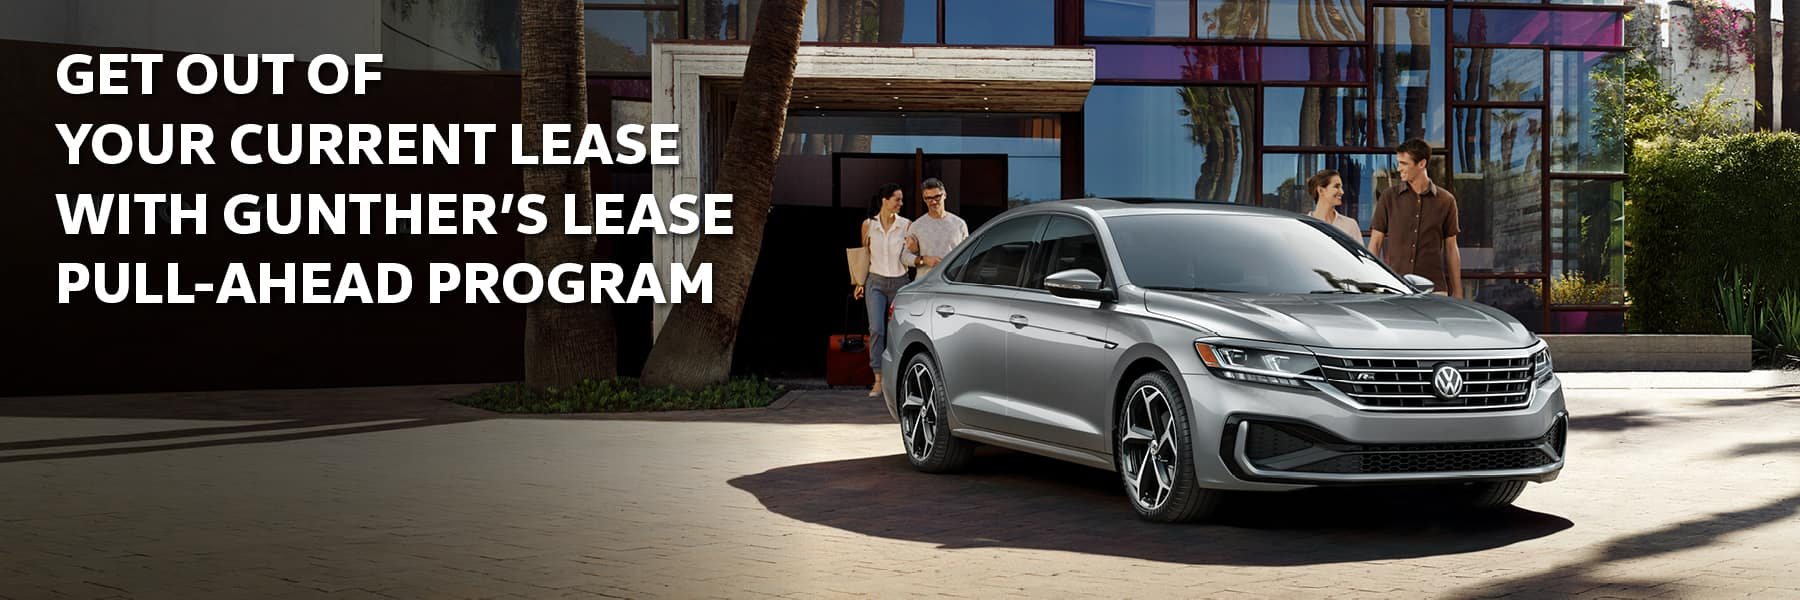 Get out of your current lease with Gunther's lease pull-ahead program.